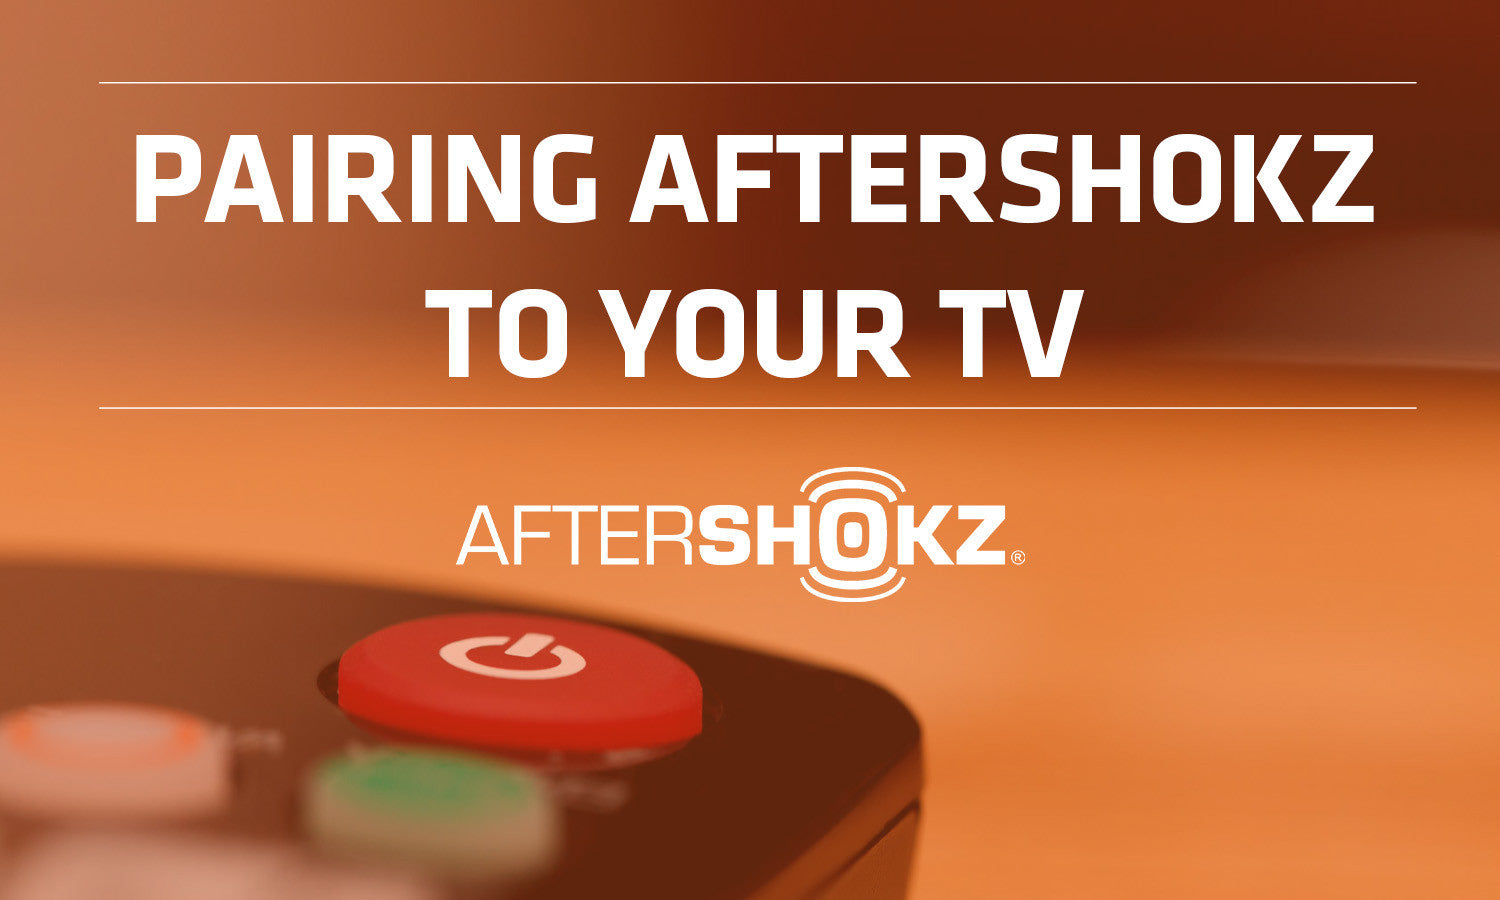 How to Pair AfterShokz To Your TV